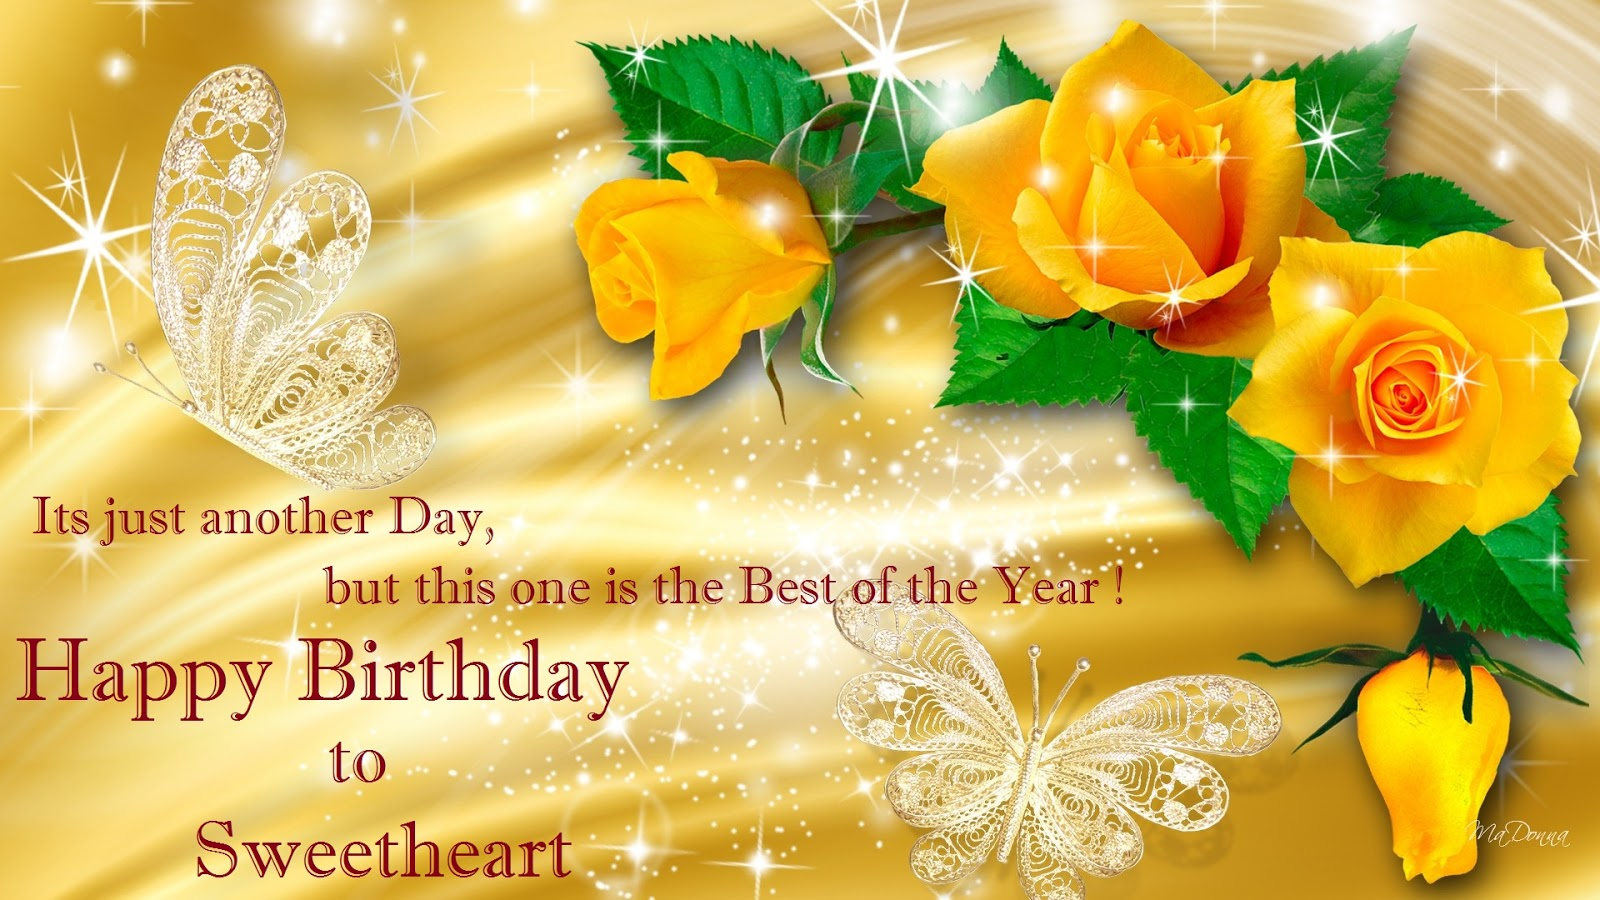 birthday greeting pictures for facebook ; 25f1245995122a8aeb47179549fd1016